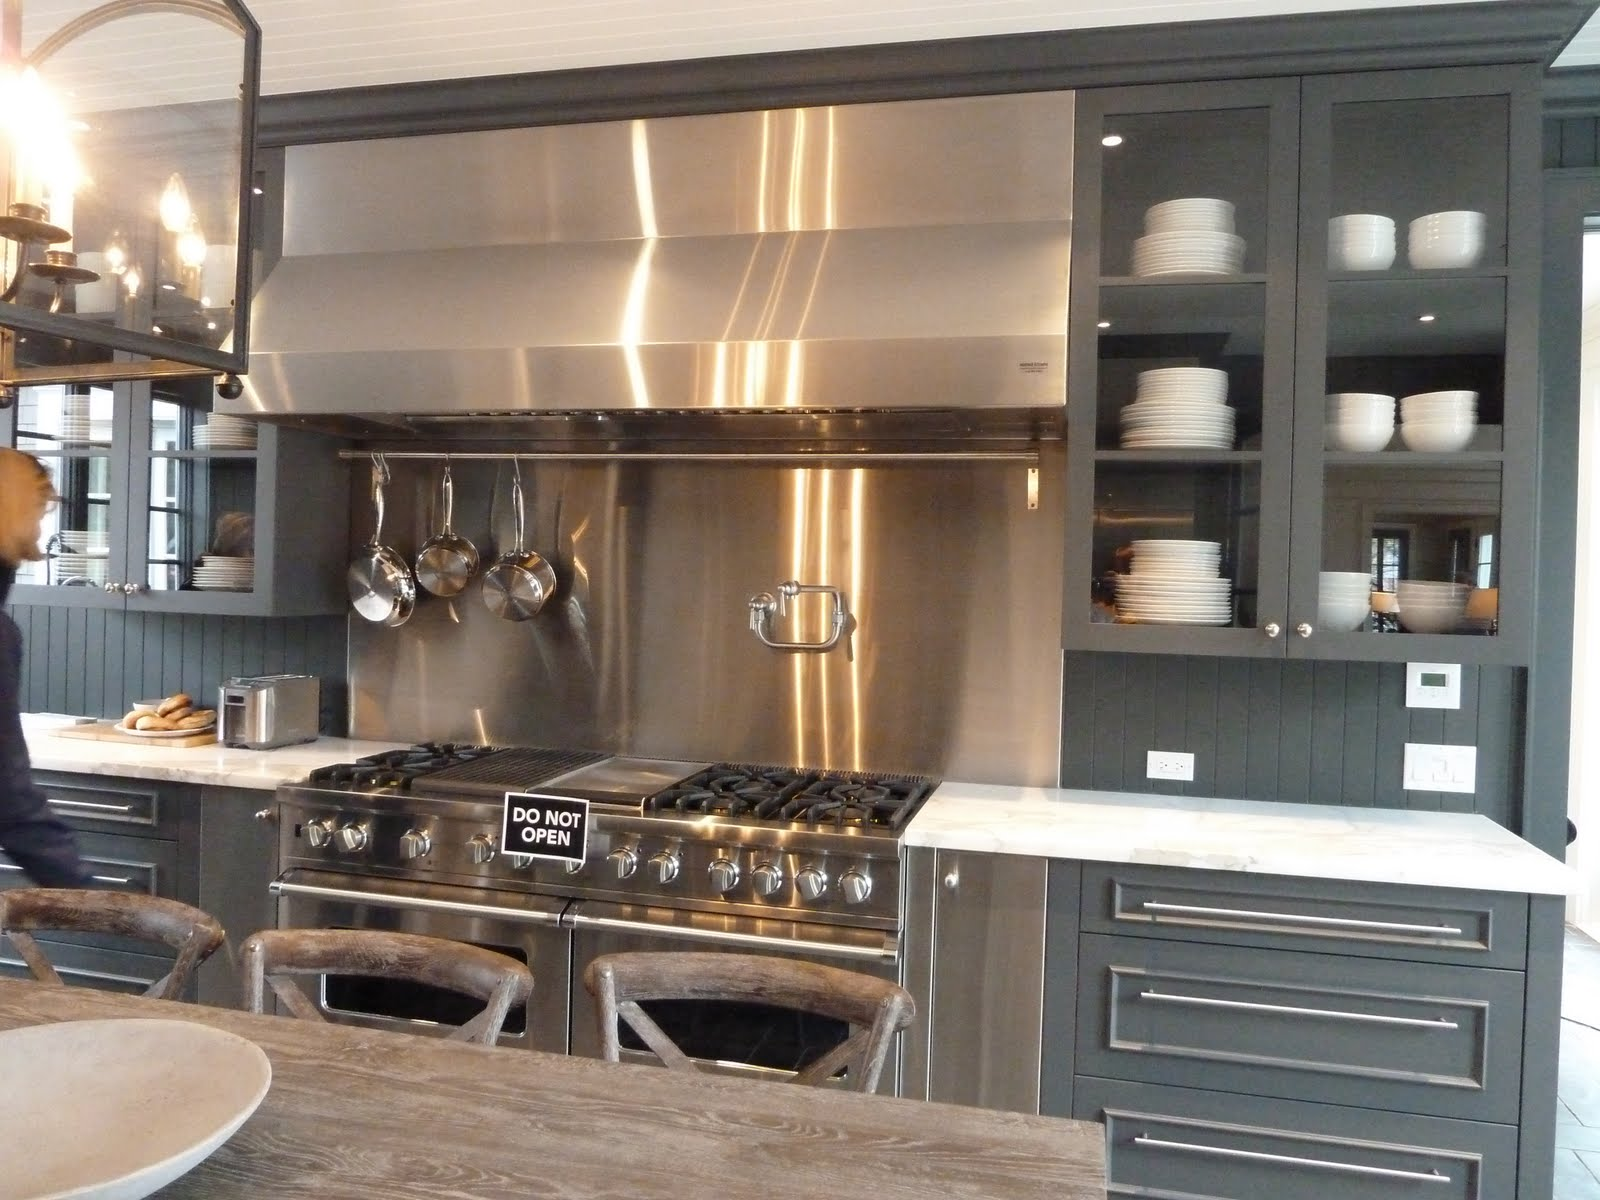 Install Above-Range Convection Oven and Cabinet : Rooms : Home